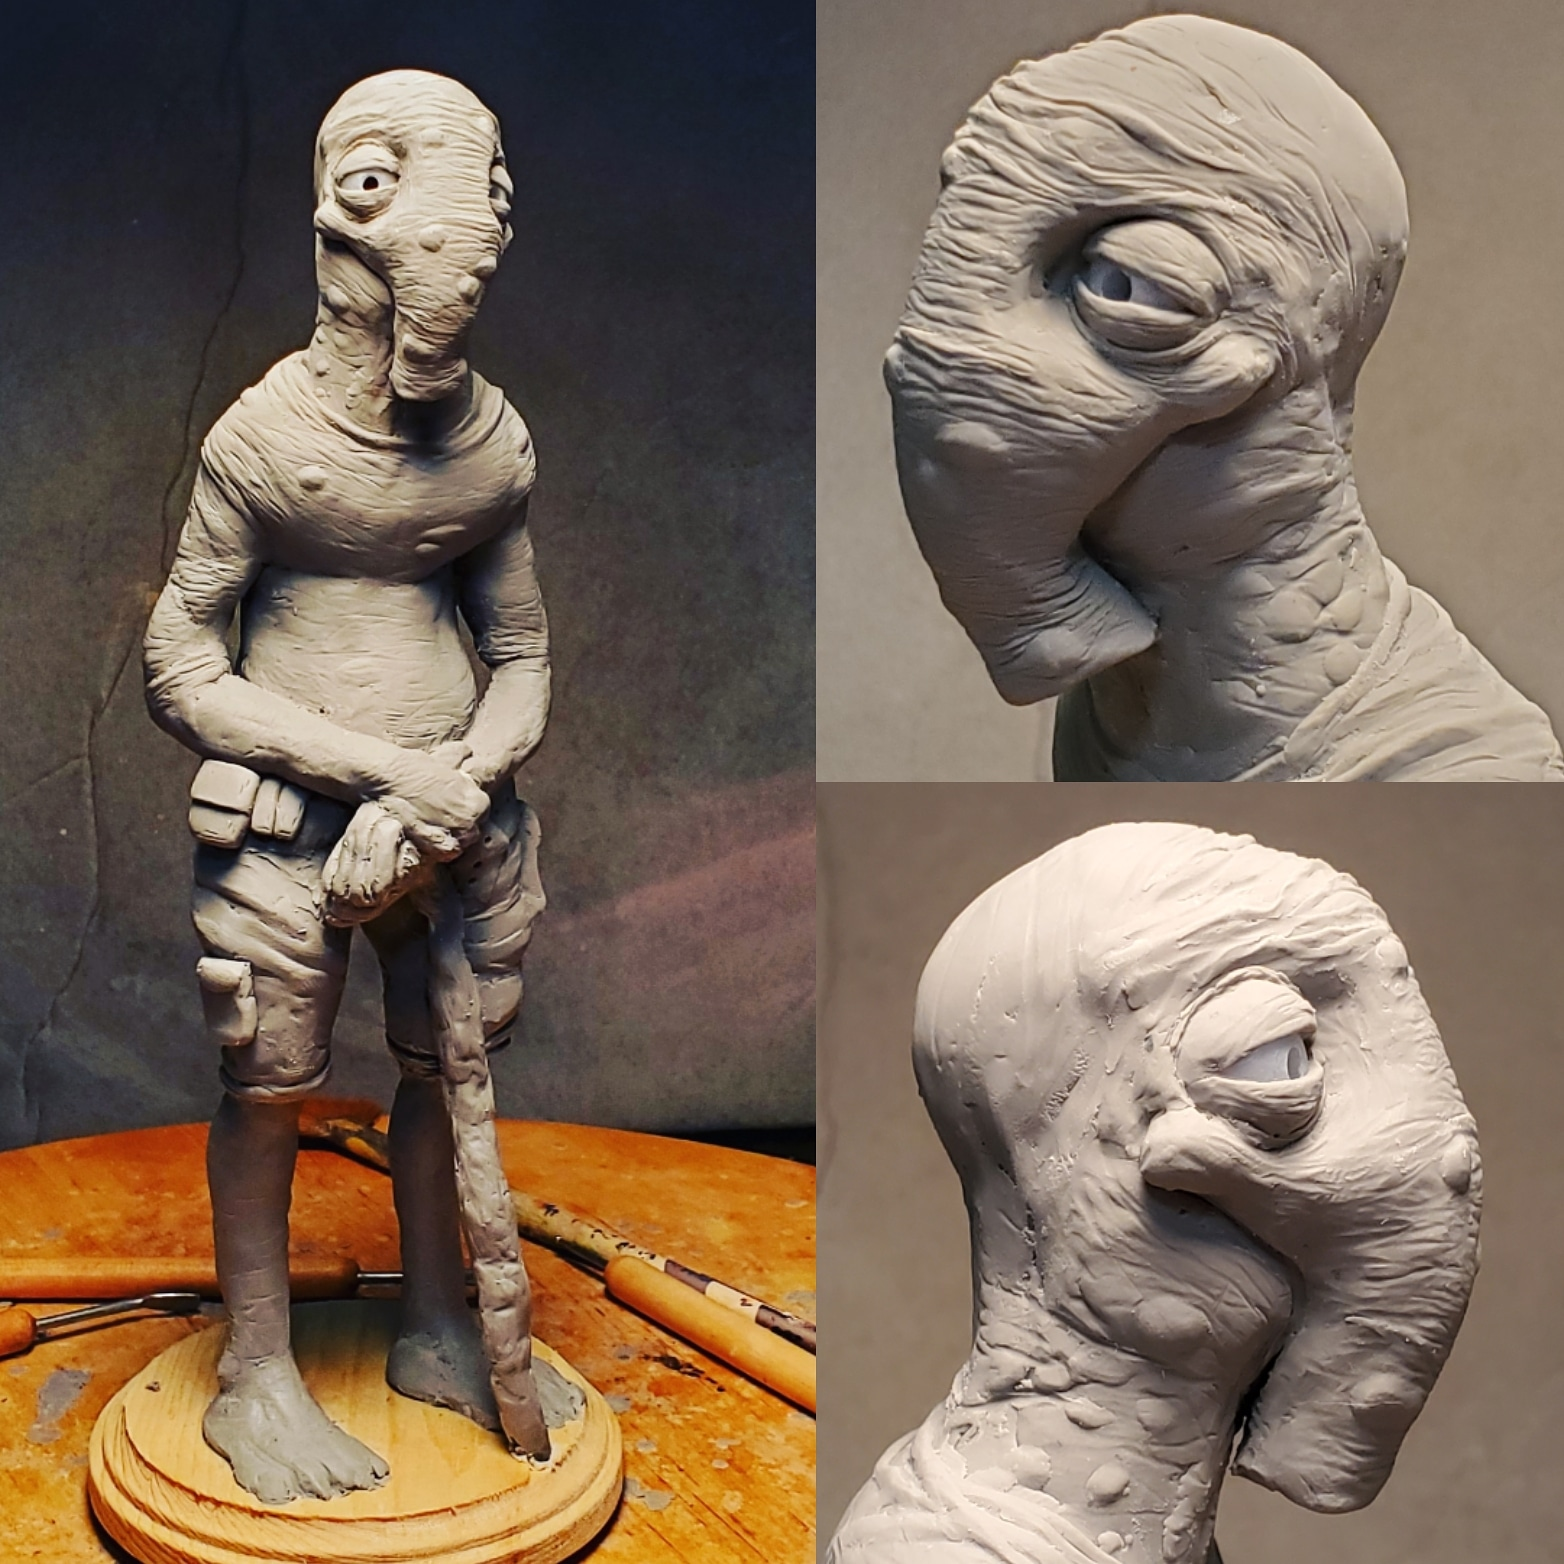 New creature sculpt I\'m working on.